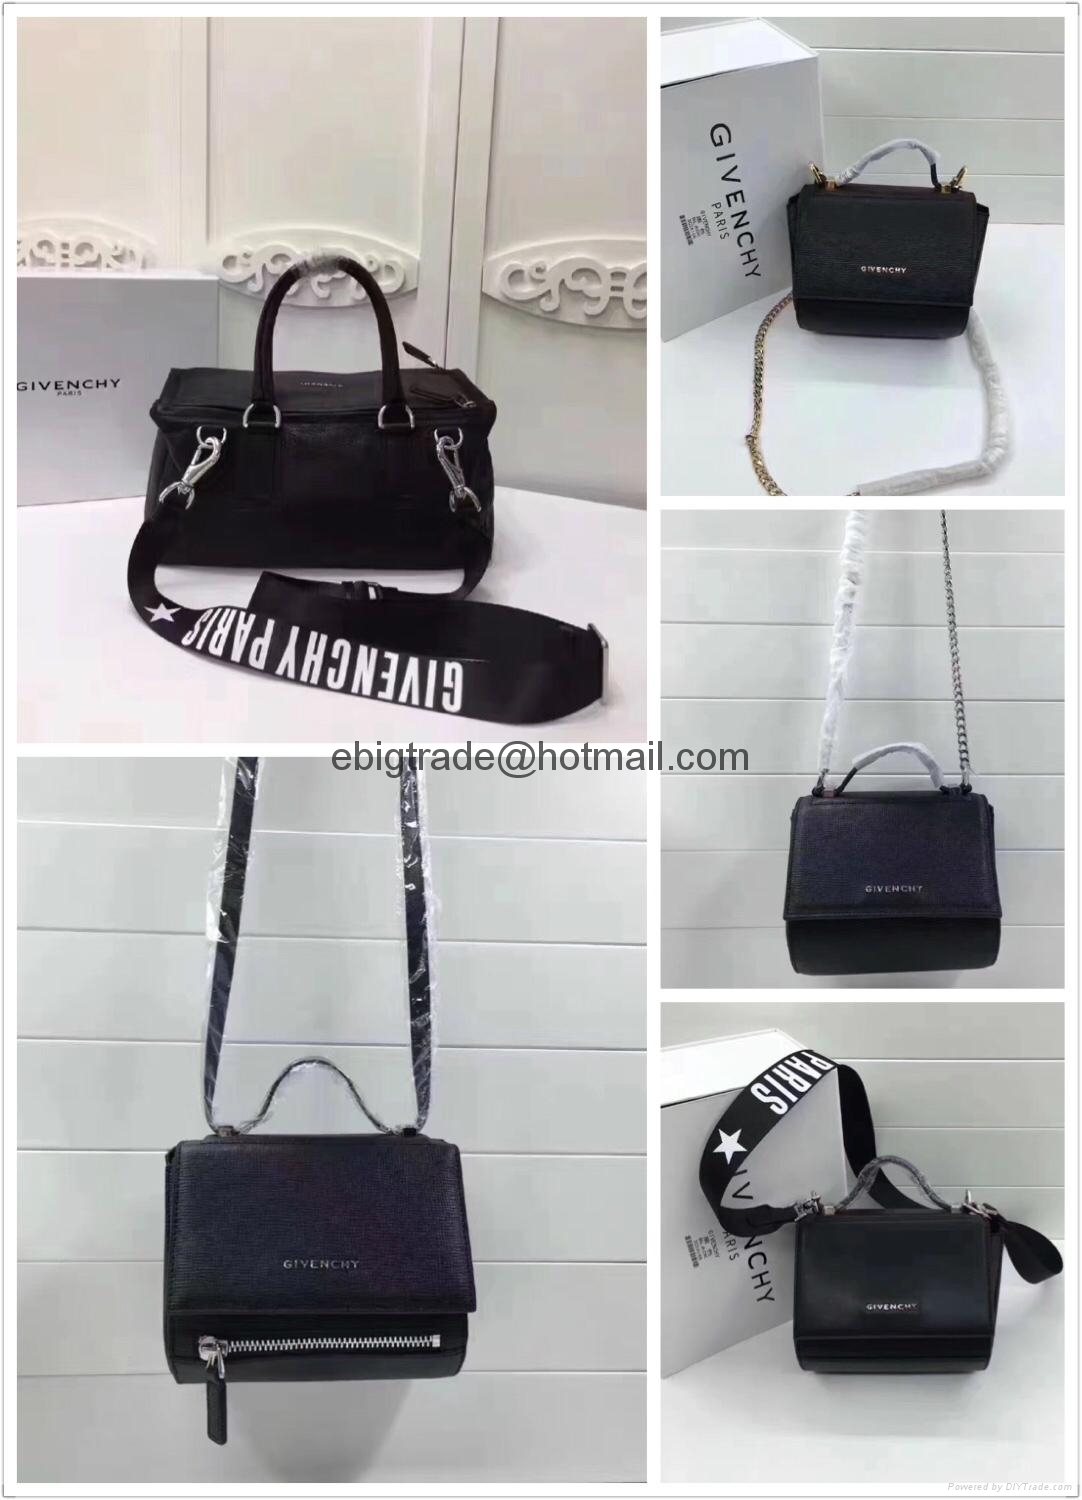 Givenchy handbags for sale